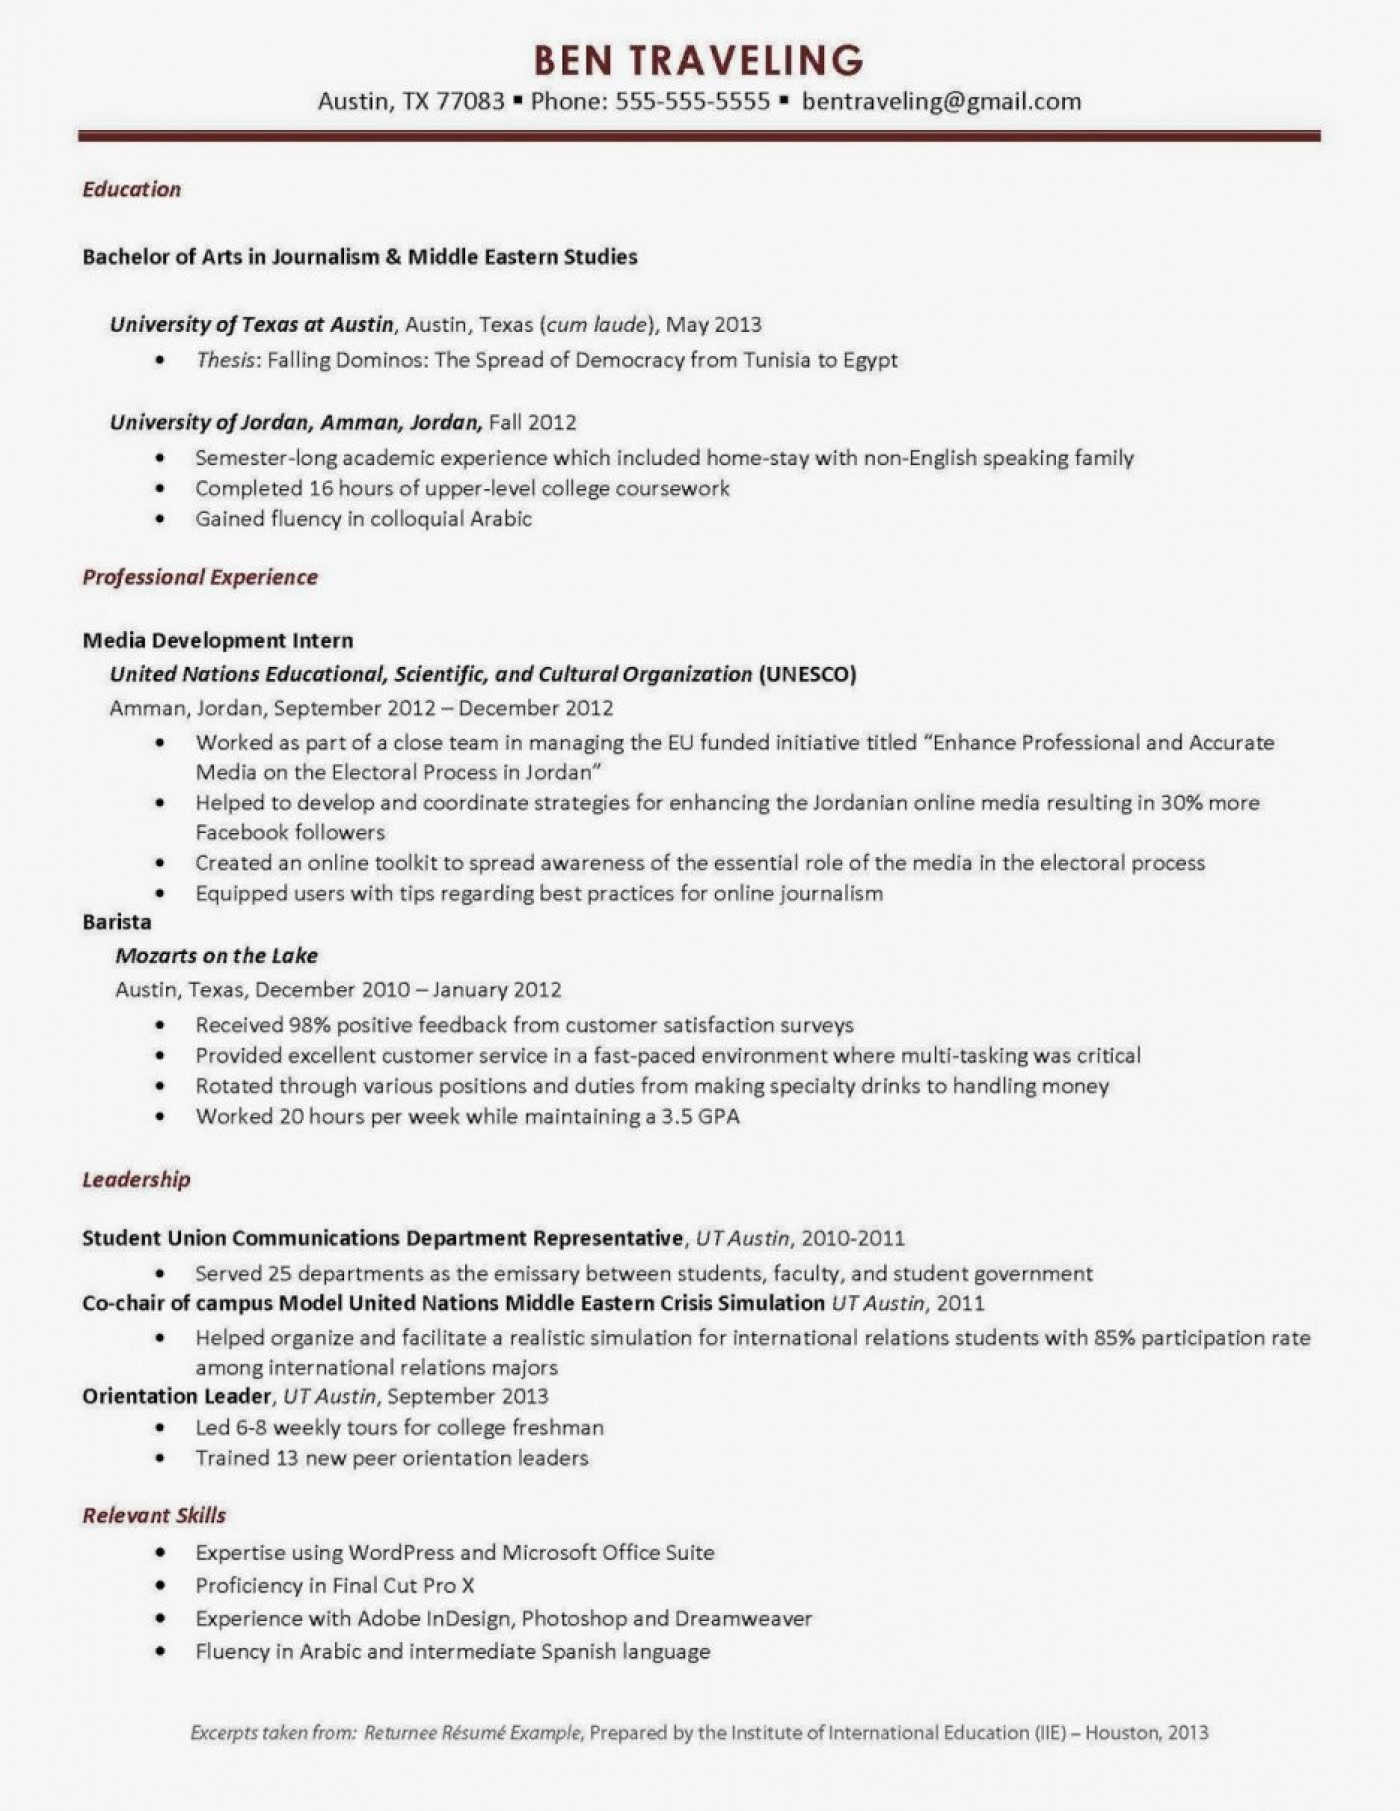 018 Study Abroad Essay Example Morethantravelworkshop Resume Personal Sample Scholarship Examples Why Do You Want To Application Top Samples I 1400